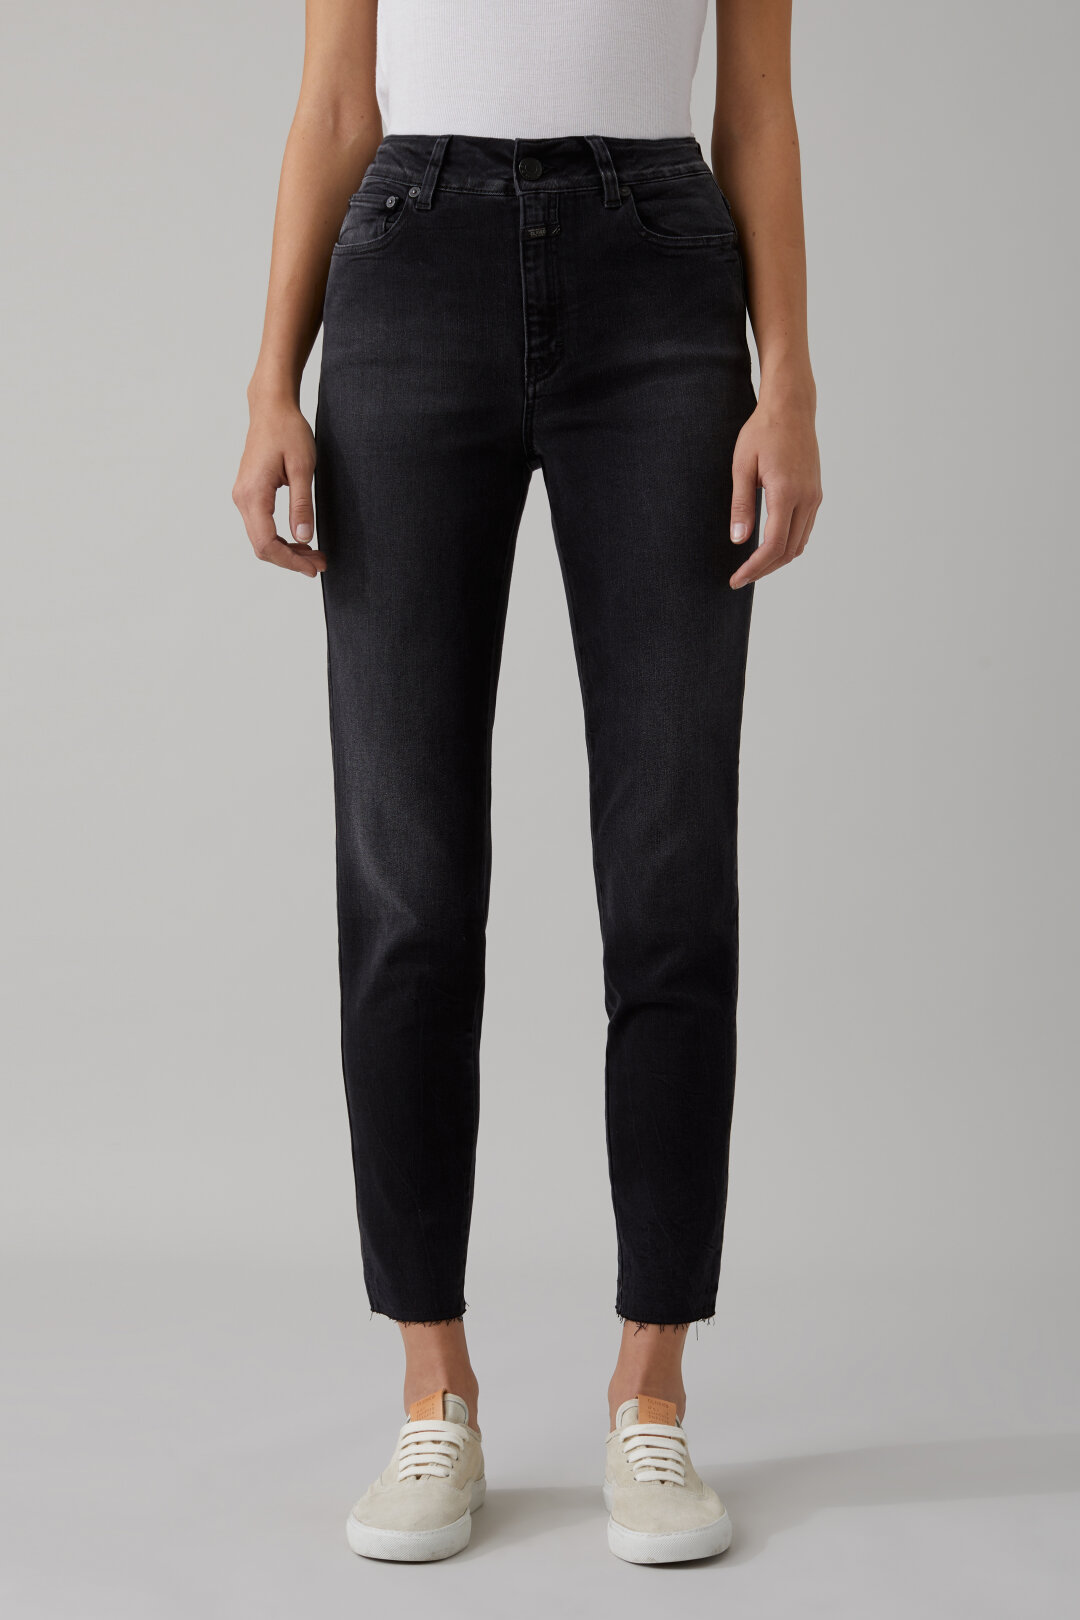 Day Black Stretch Denim